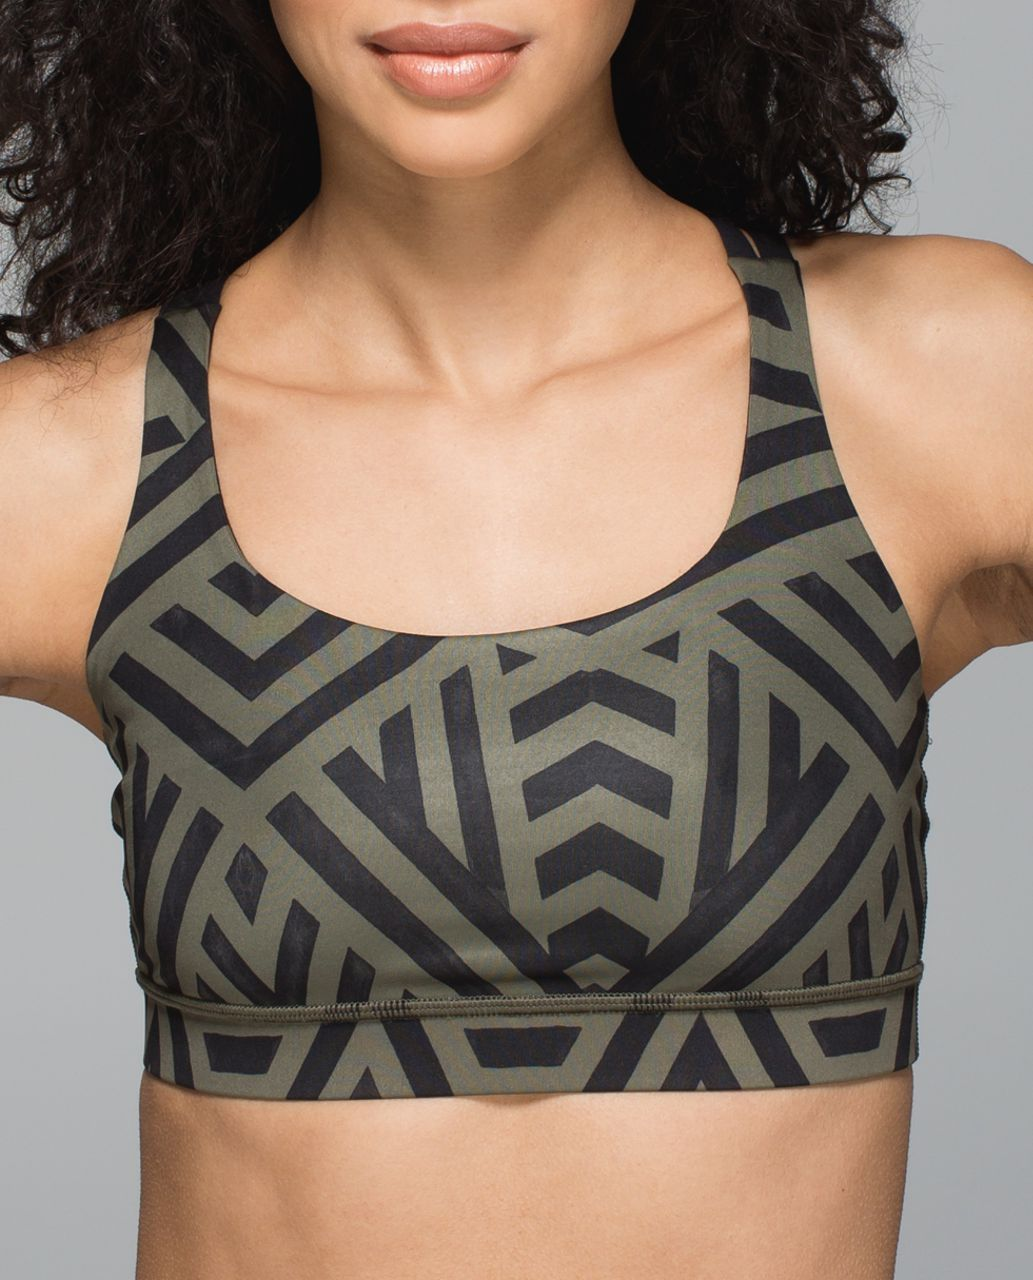 Lululemon Energy Bra - Chevron Shuffle Fatigue Green Black